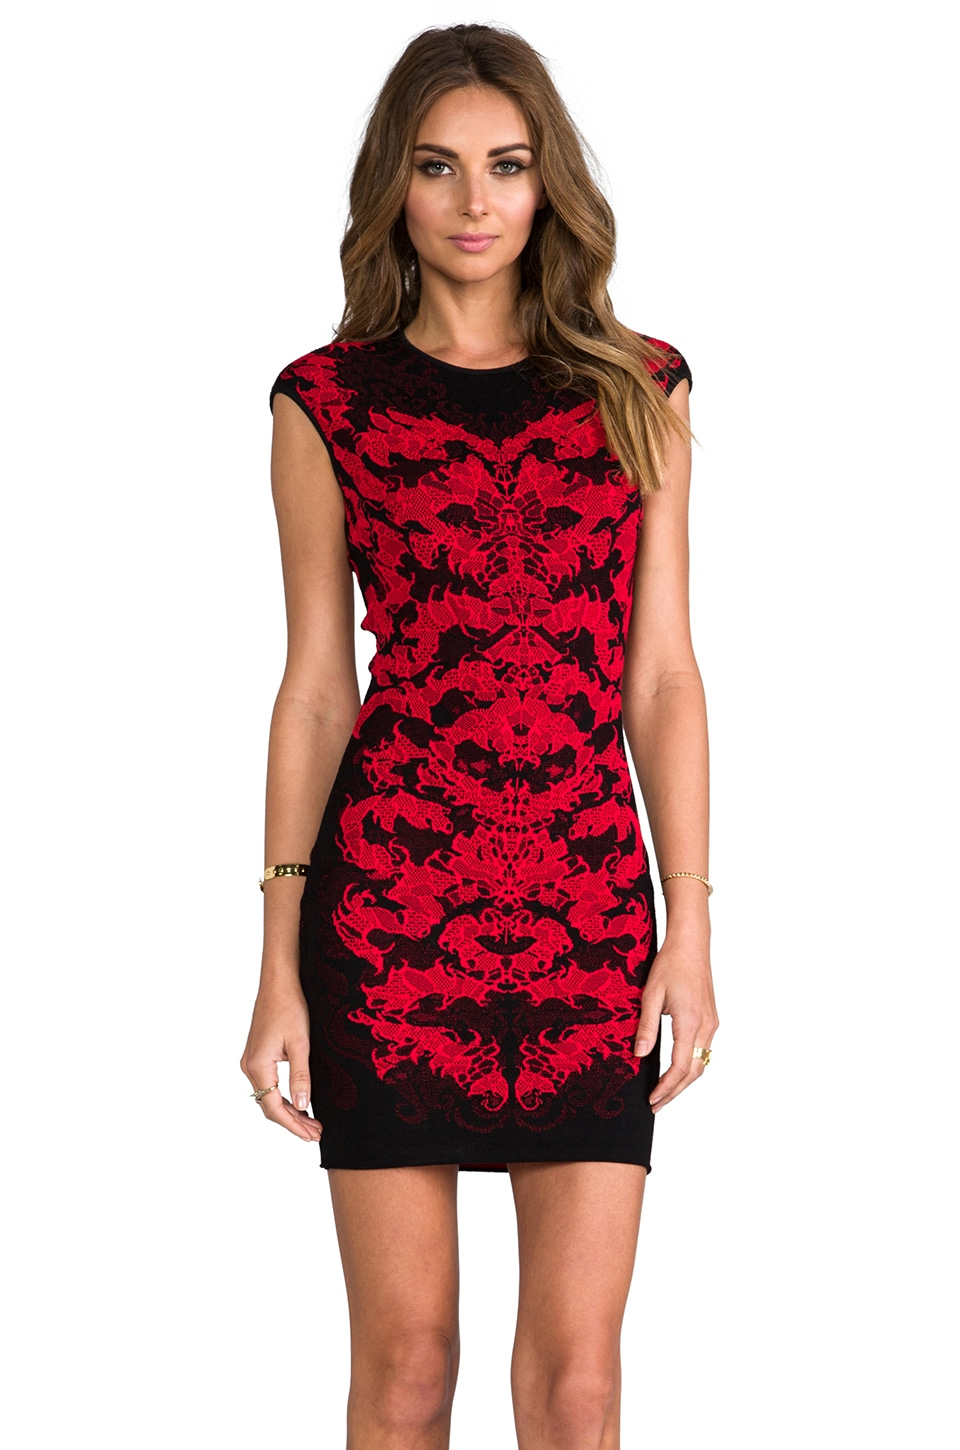 RVN Flame Lace Jacquard Seath Dress in Black/Red